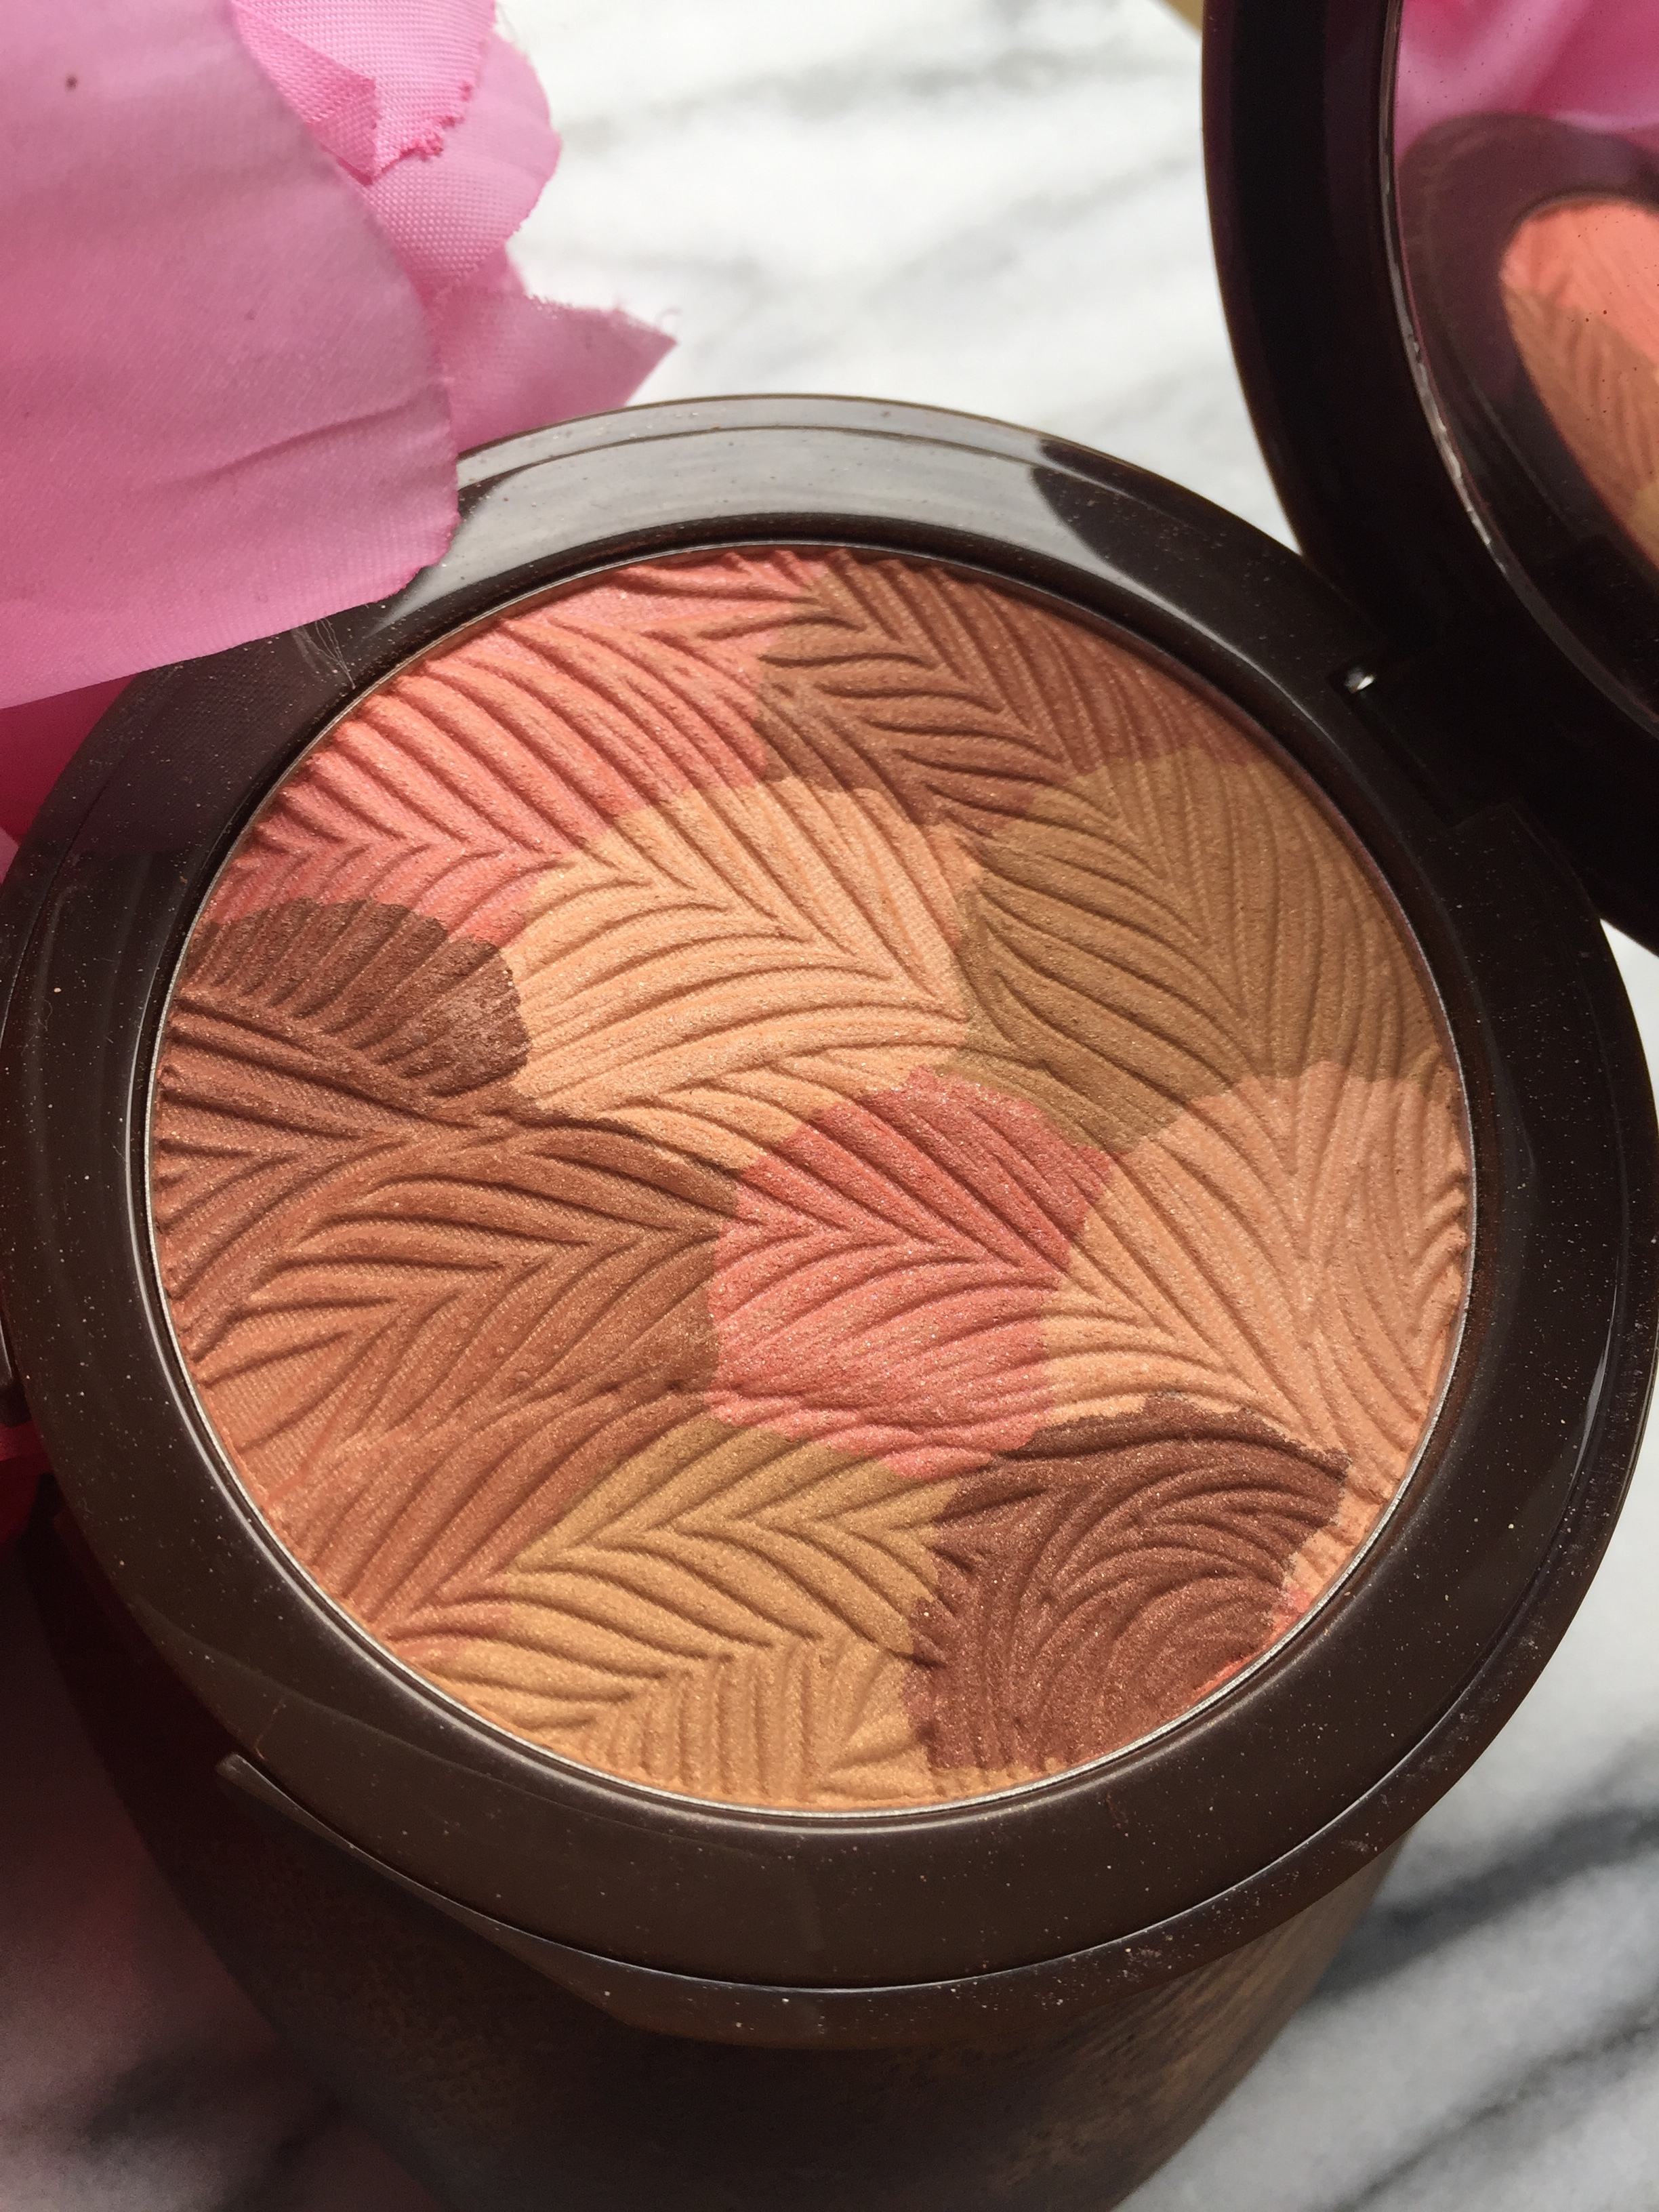 Tarte Colored Clay Blush Bronzer Blush in Park Avenue Princess - Pink Bronze